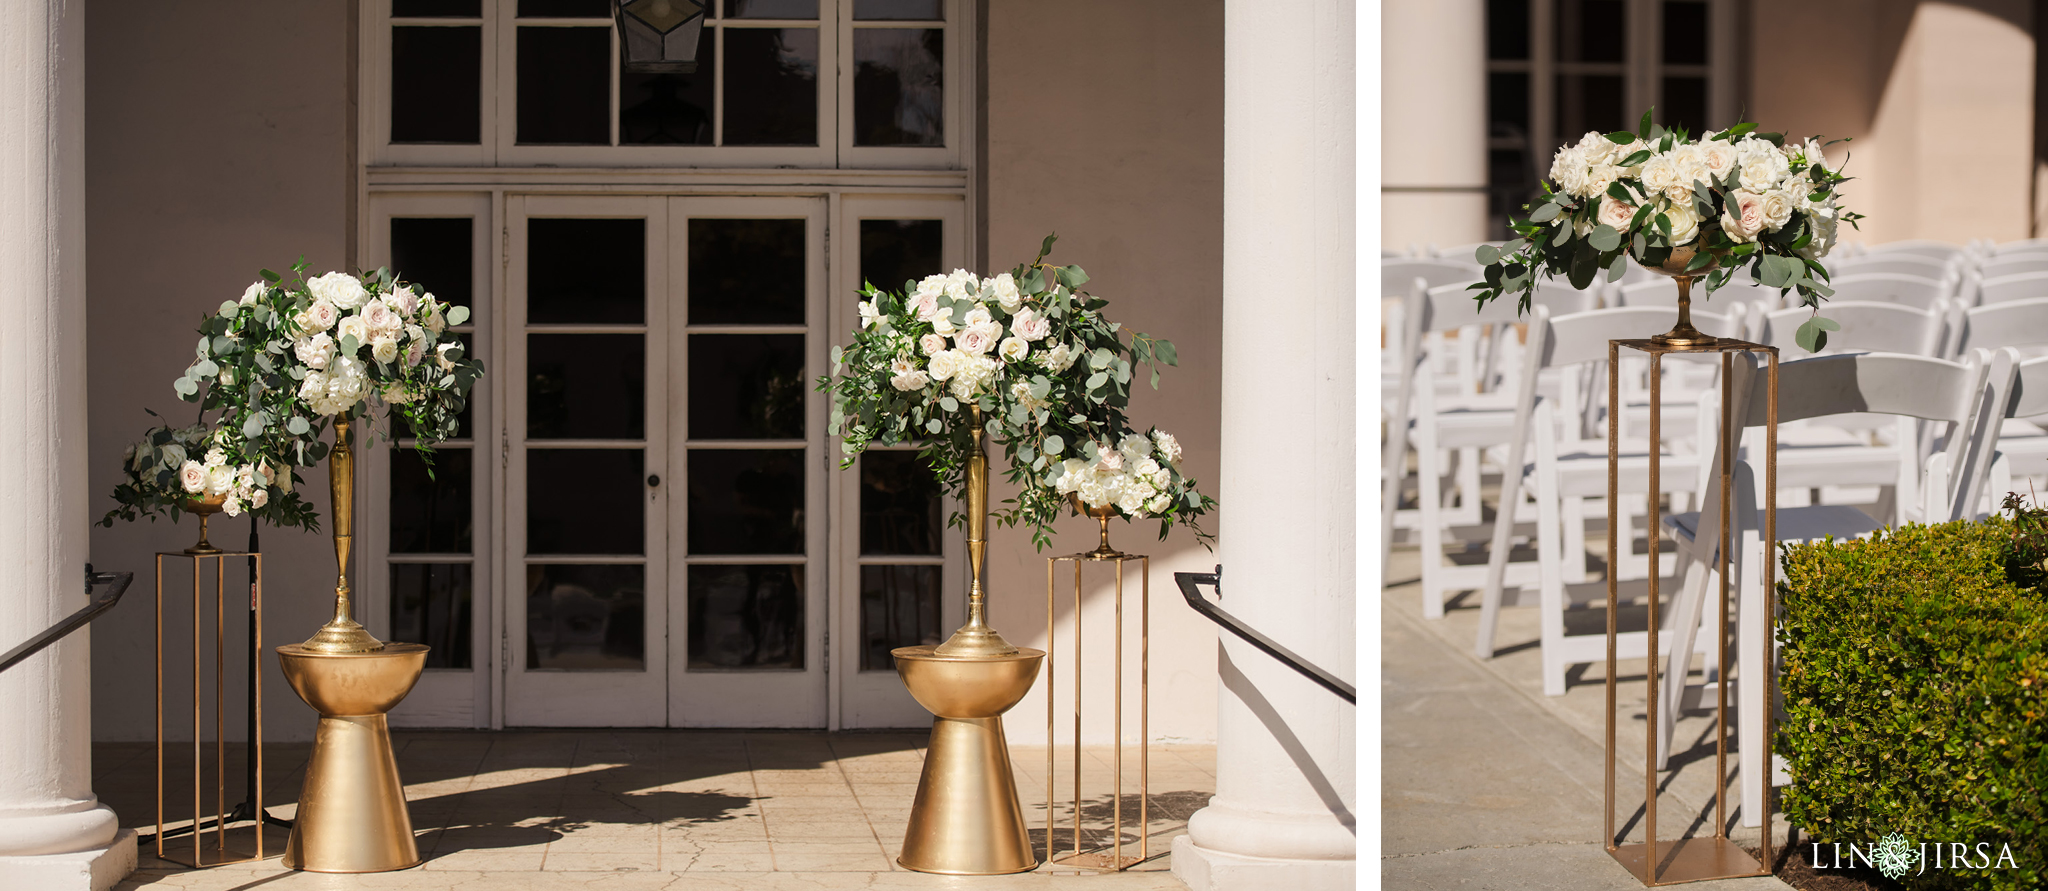 75 The Ebell Los Angeles Wedding Photography